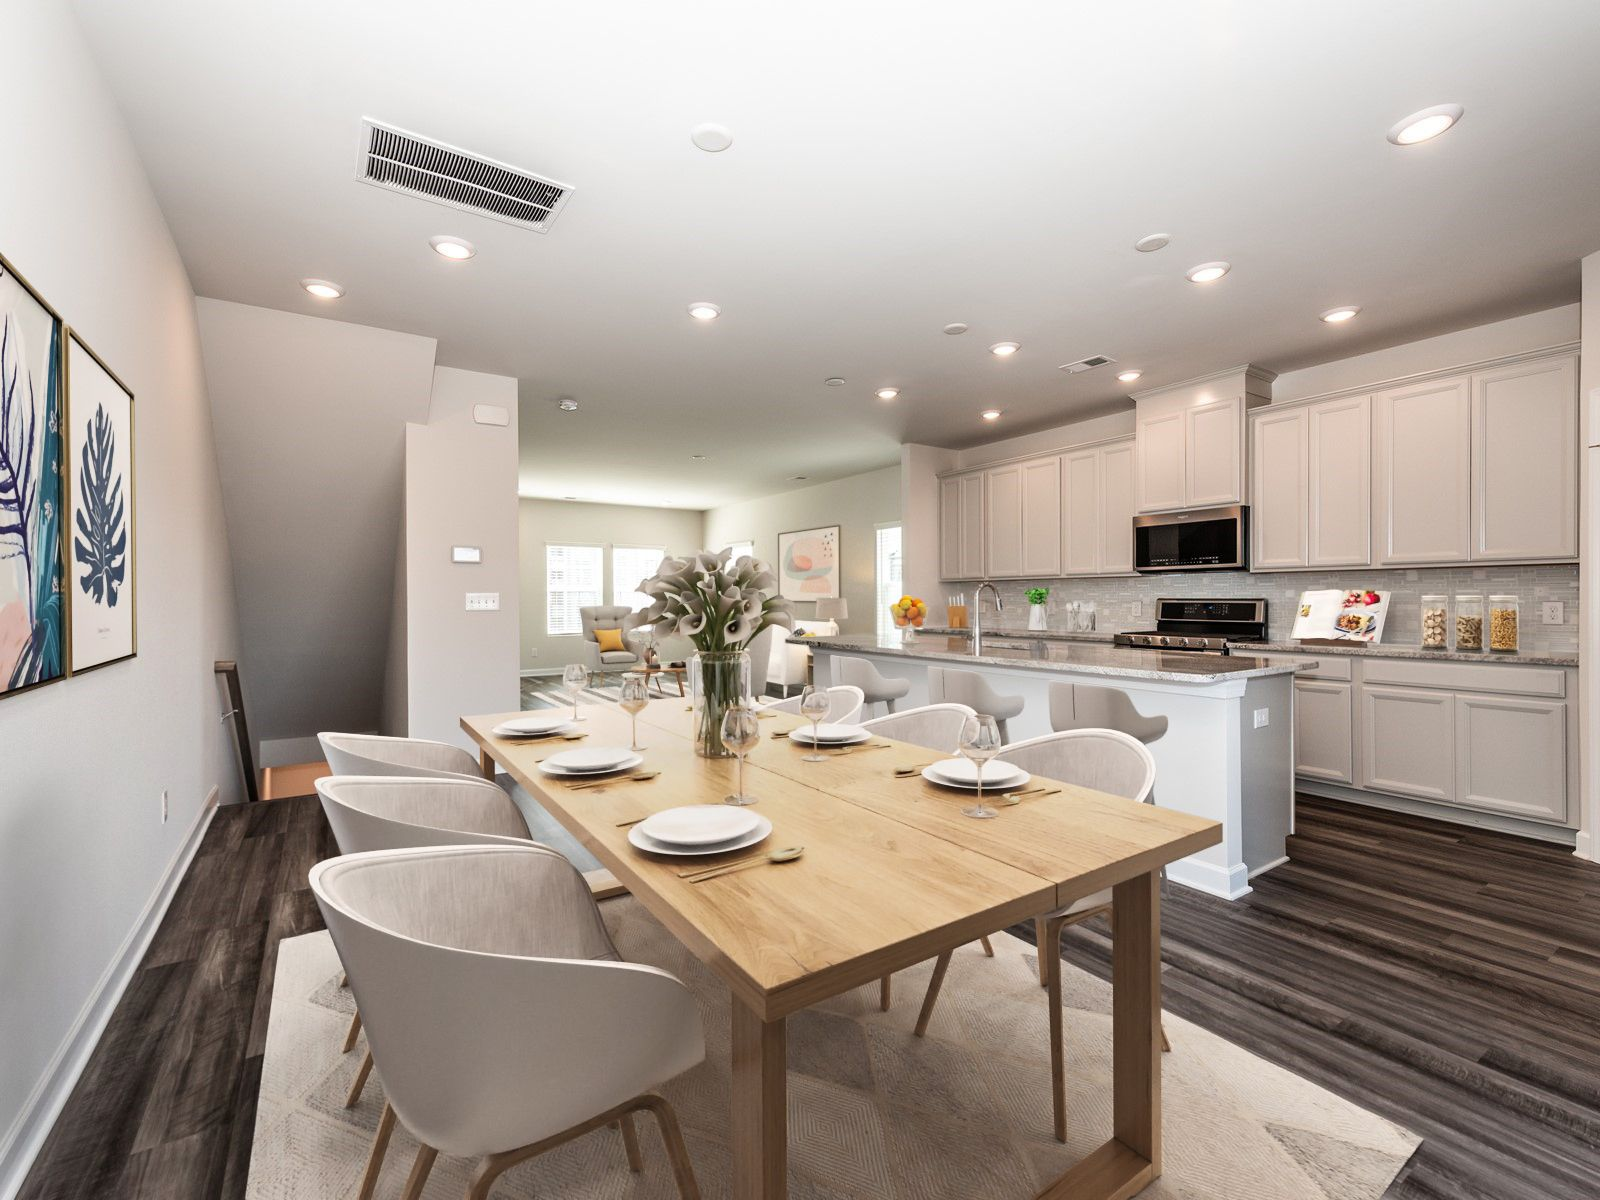 Kitchen featured in the Farmington By Meritage Homes in Charlotte, NC